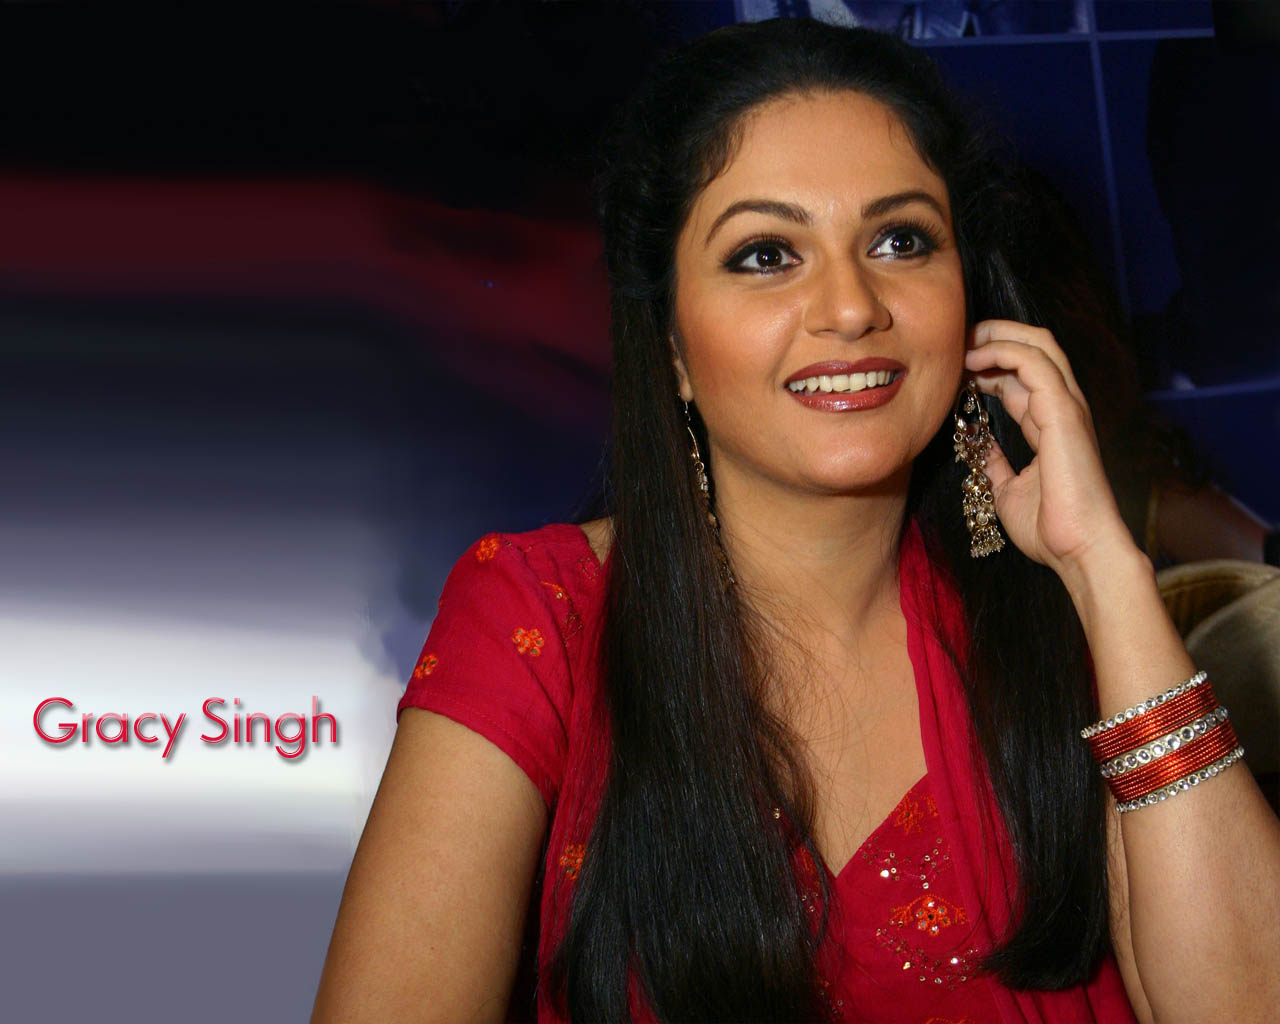 Fashionewallpaperblogspotcom Gracy Singh Wallpapers -3540